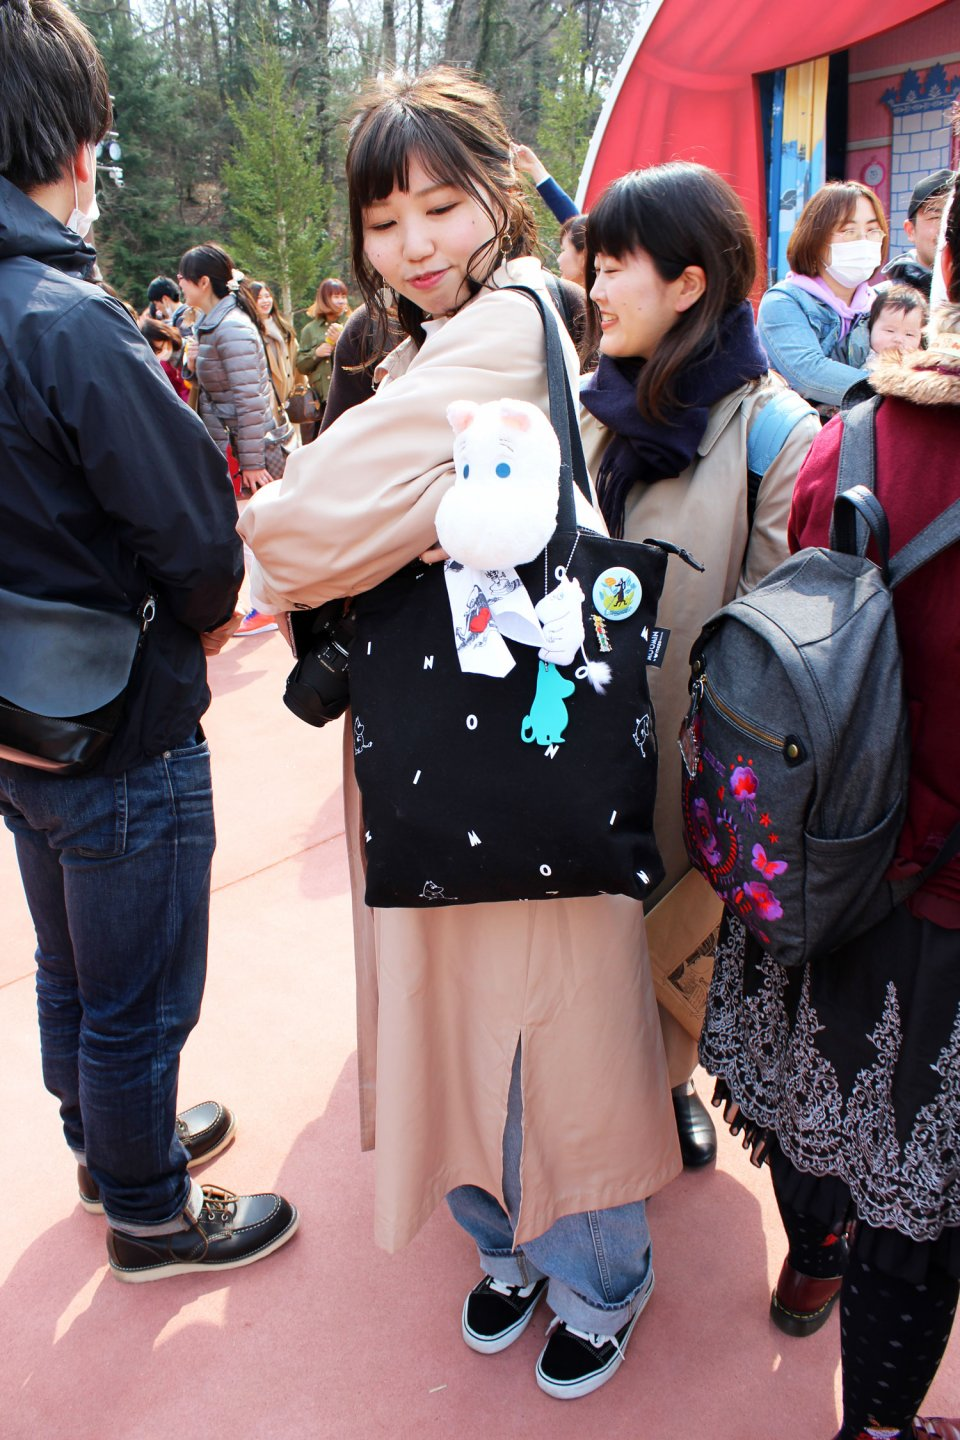 Moominvalley-Park-Japan-Moomintroll-Bag